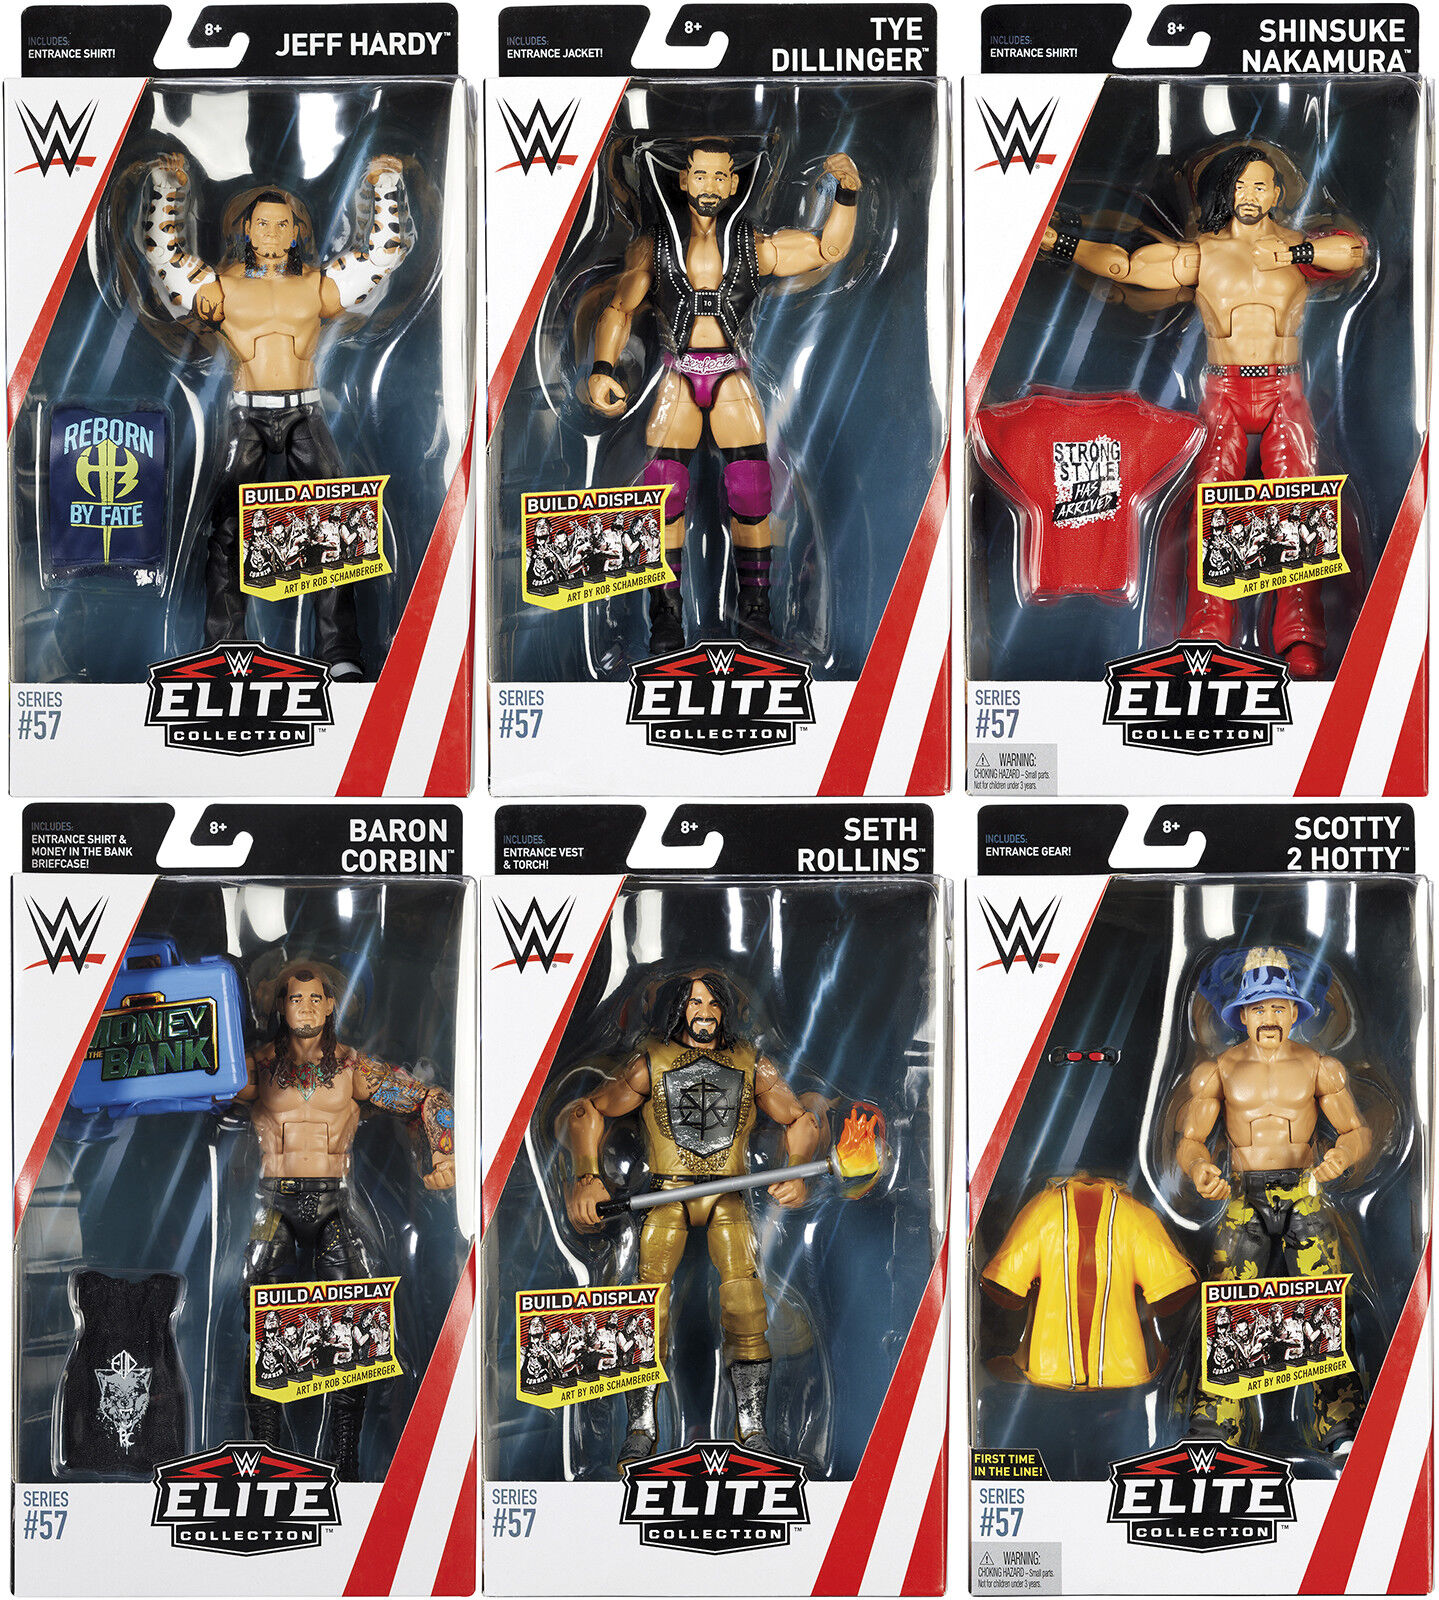 WWE MATTEL SERIES 57 ACTION WRESTLING FIGURE COMPLETE SET OF 6 NEW ACCESSORIES